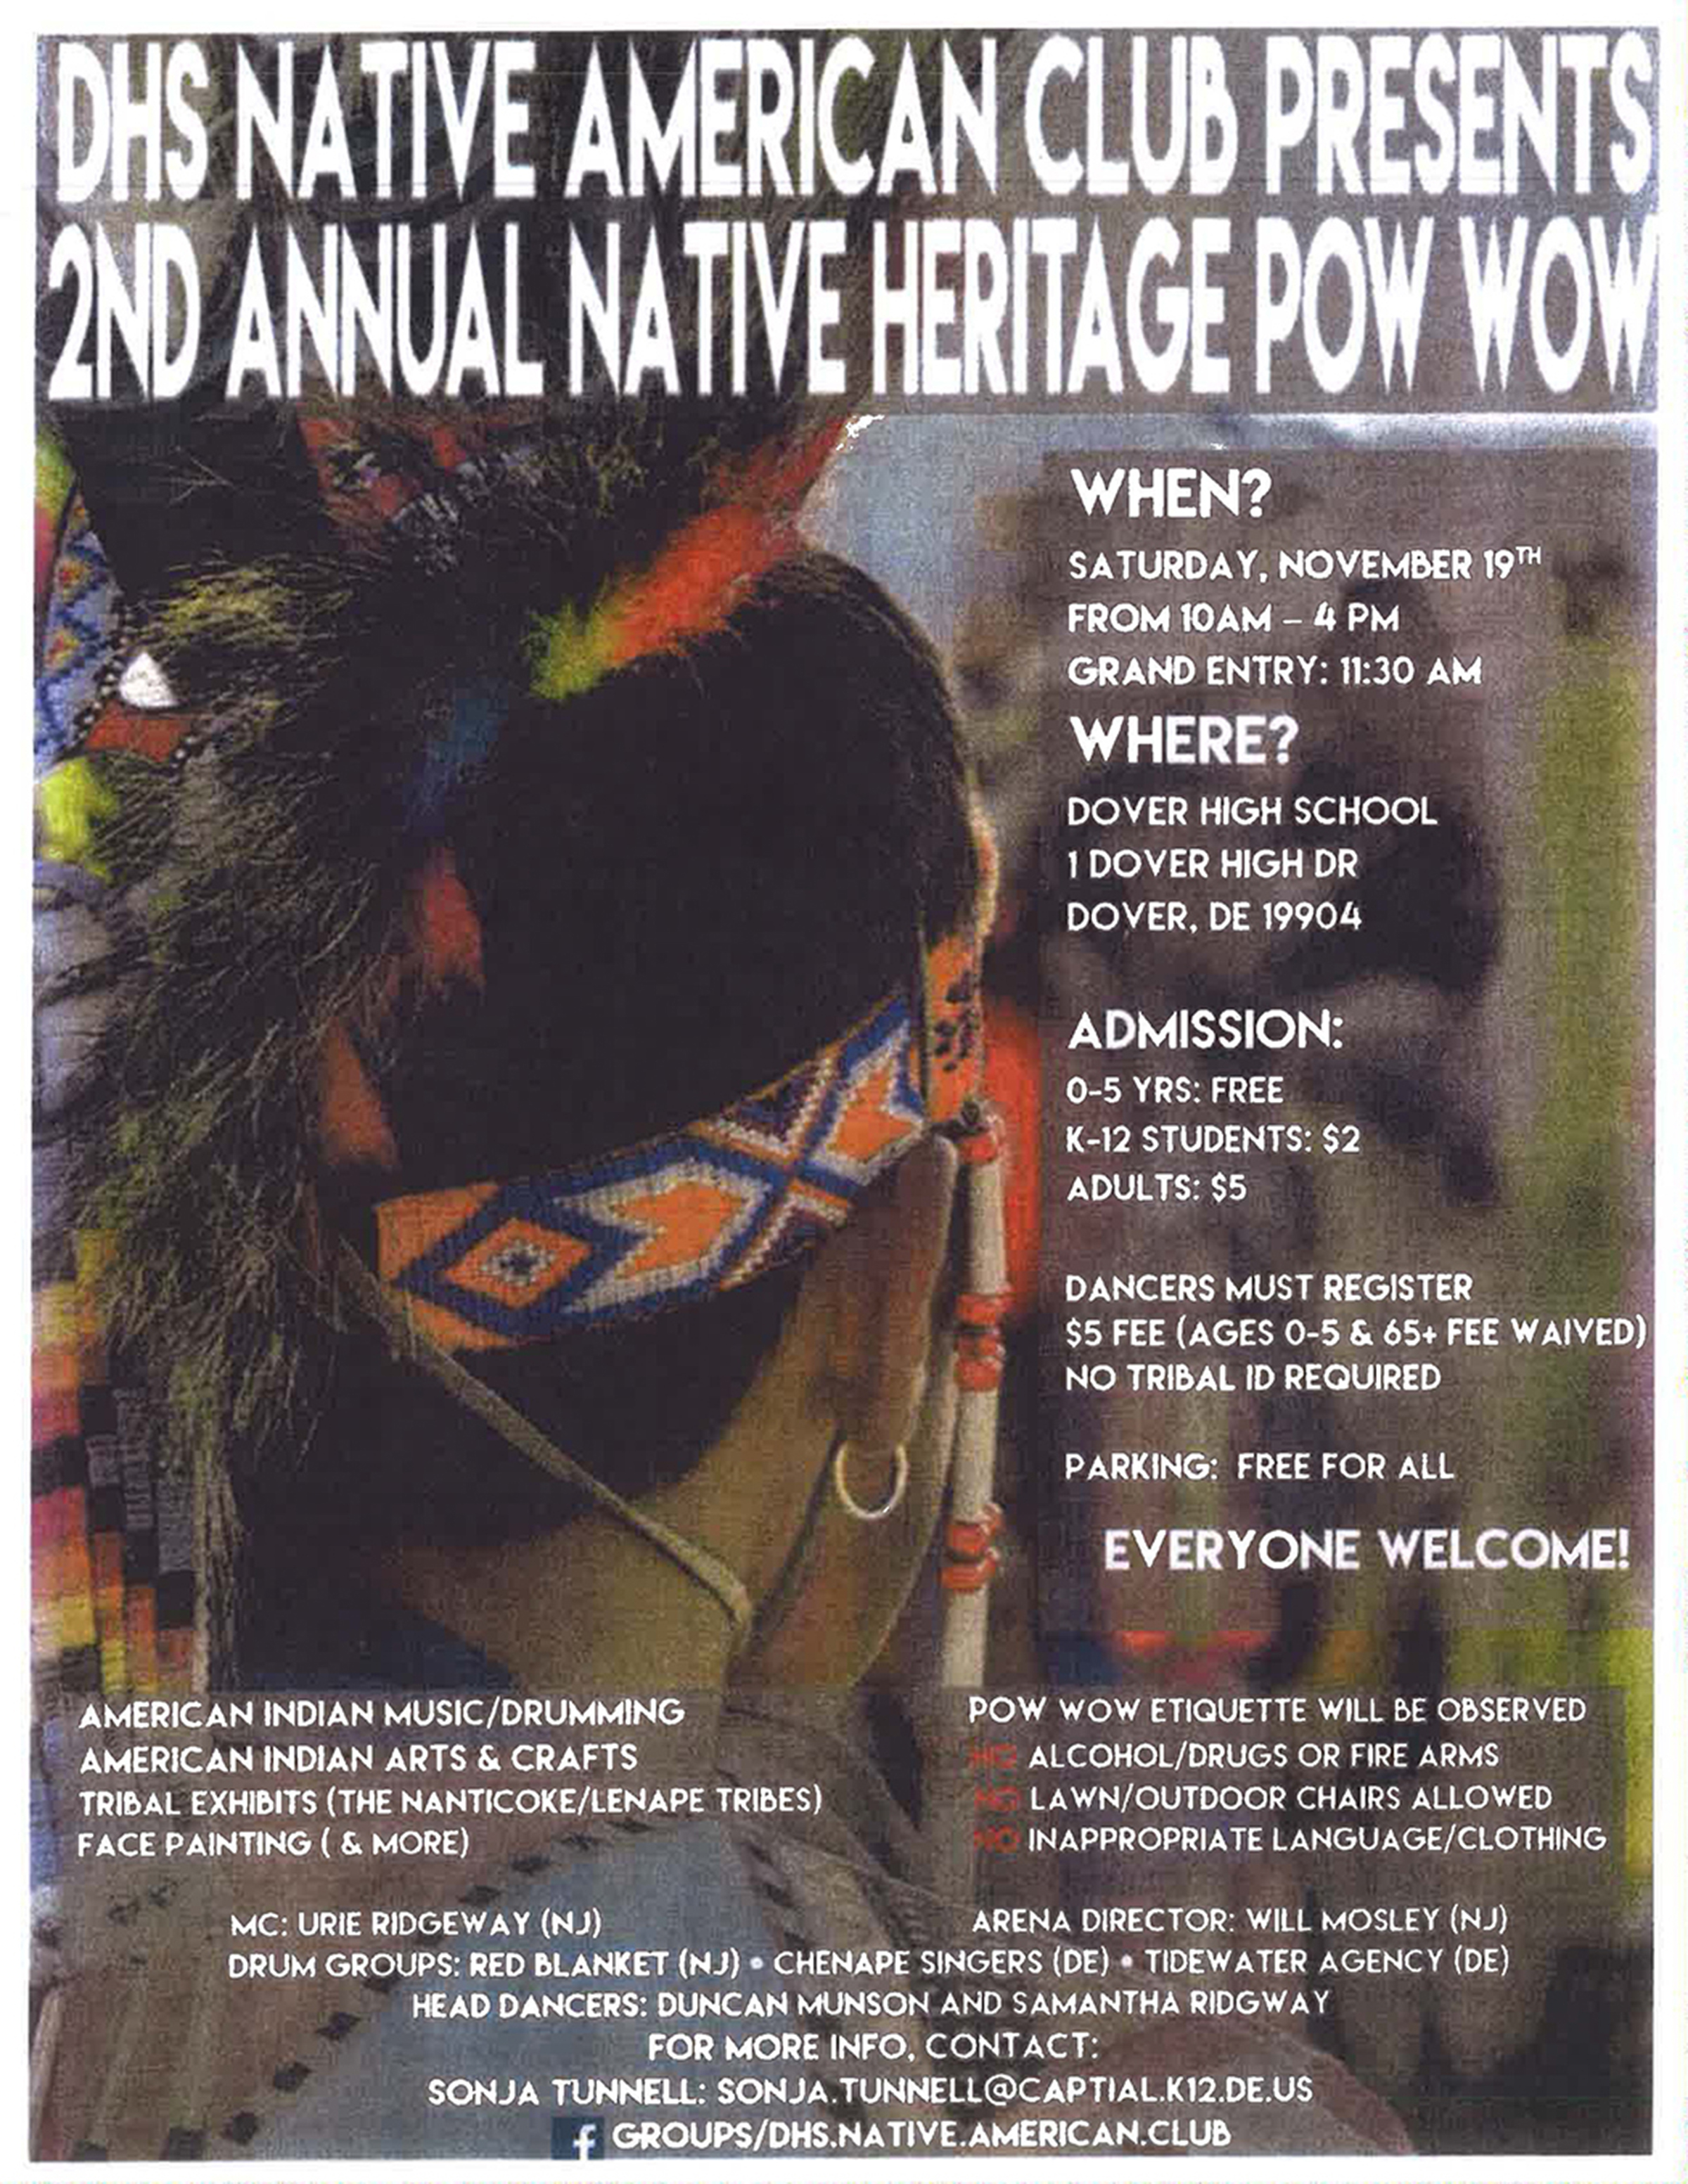 2nd Annual Native Heritage Pow Wow - DelmarvaLife